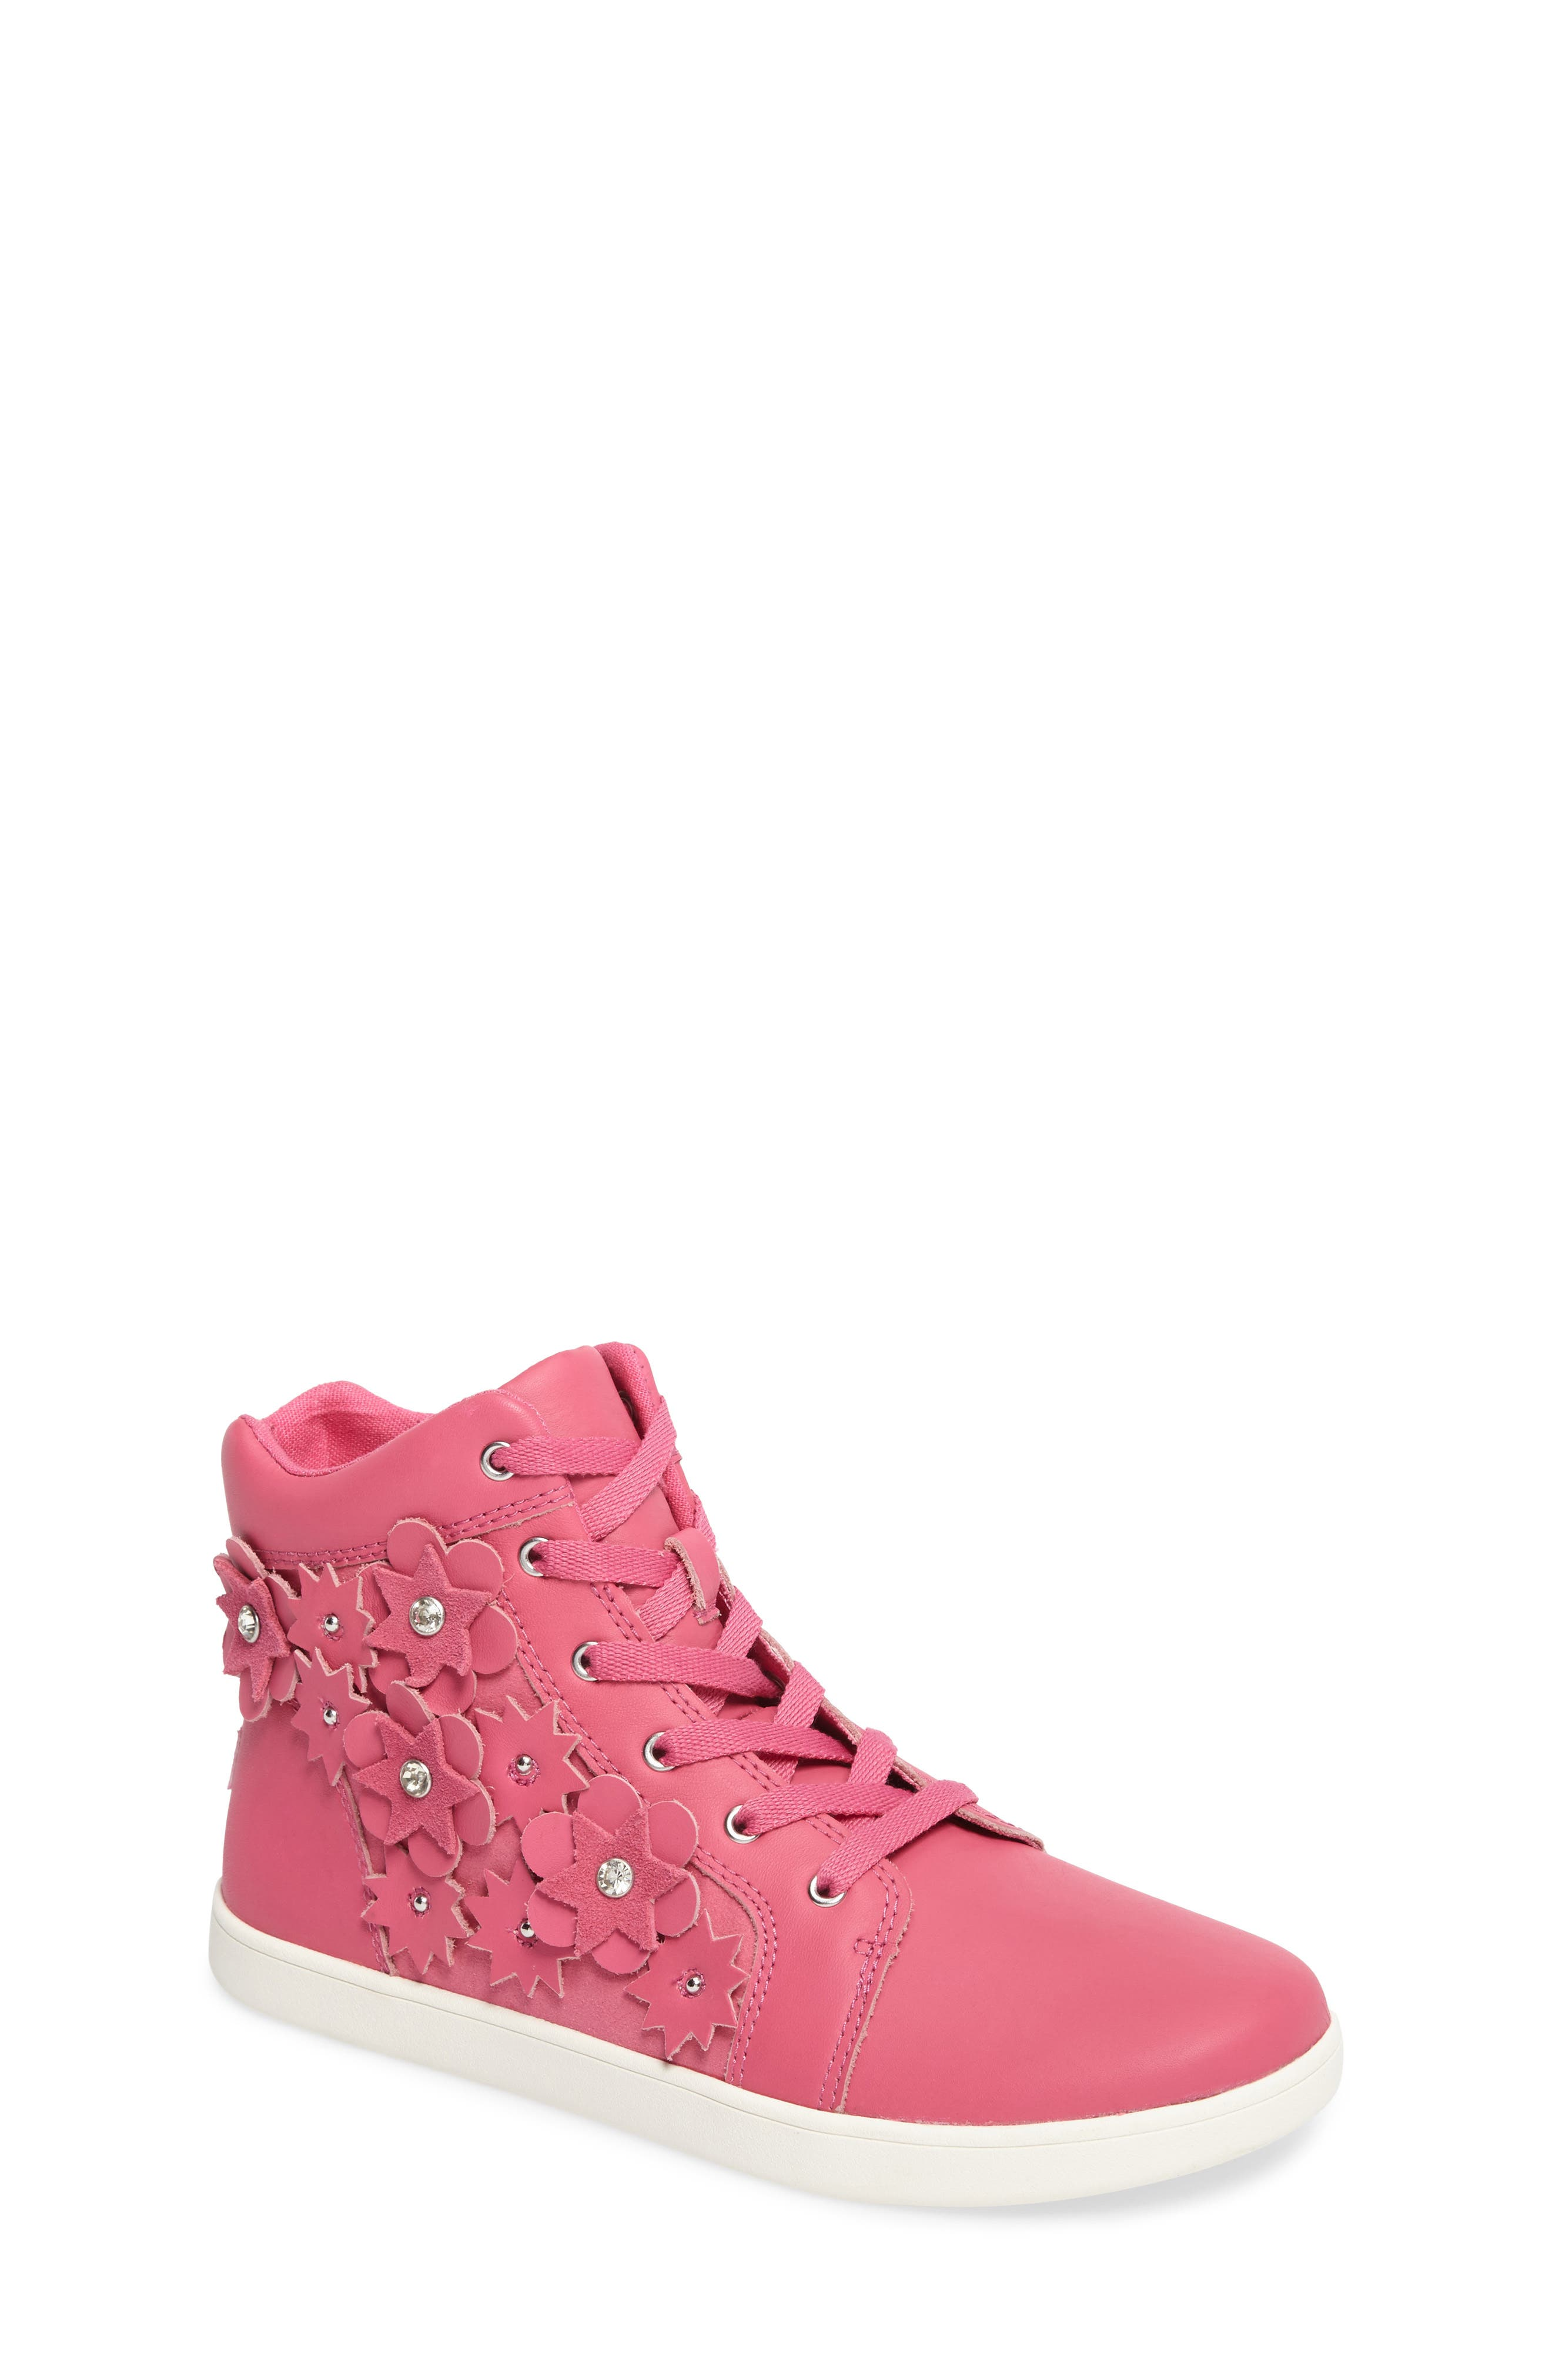 Alternate Image 1 Selected - UGG® Schyler Petal Embellished High Top Sneaker (Little Kid & Big Kid)